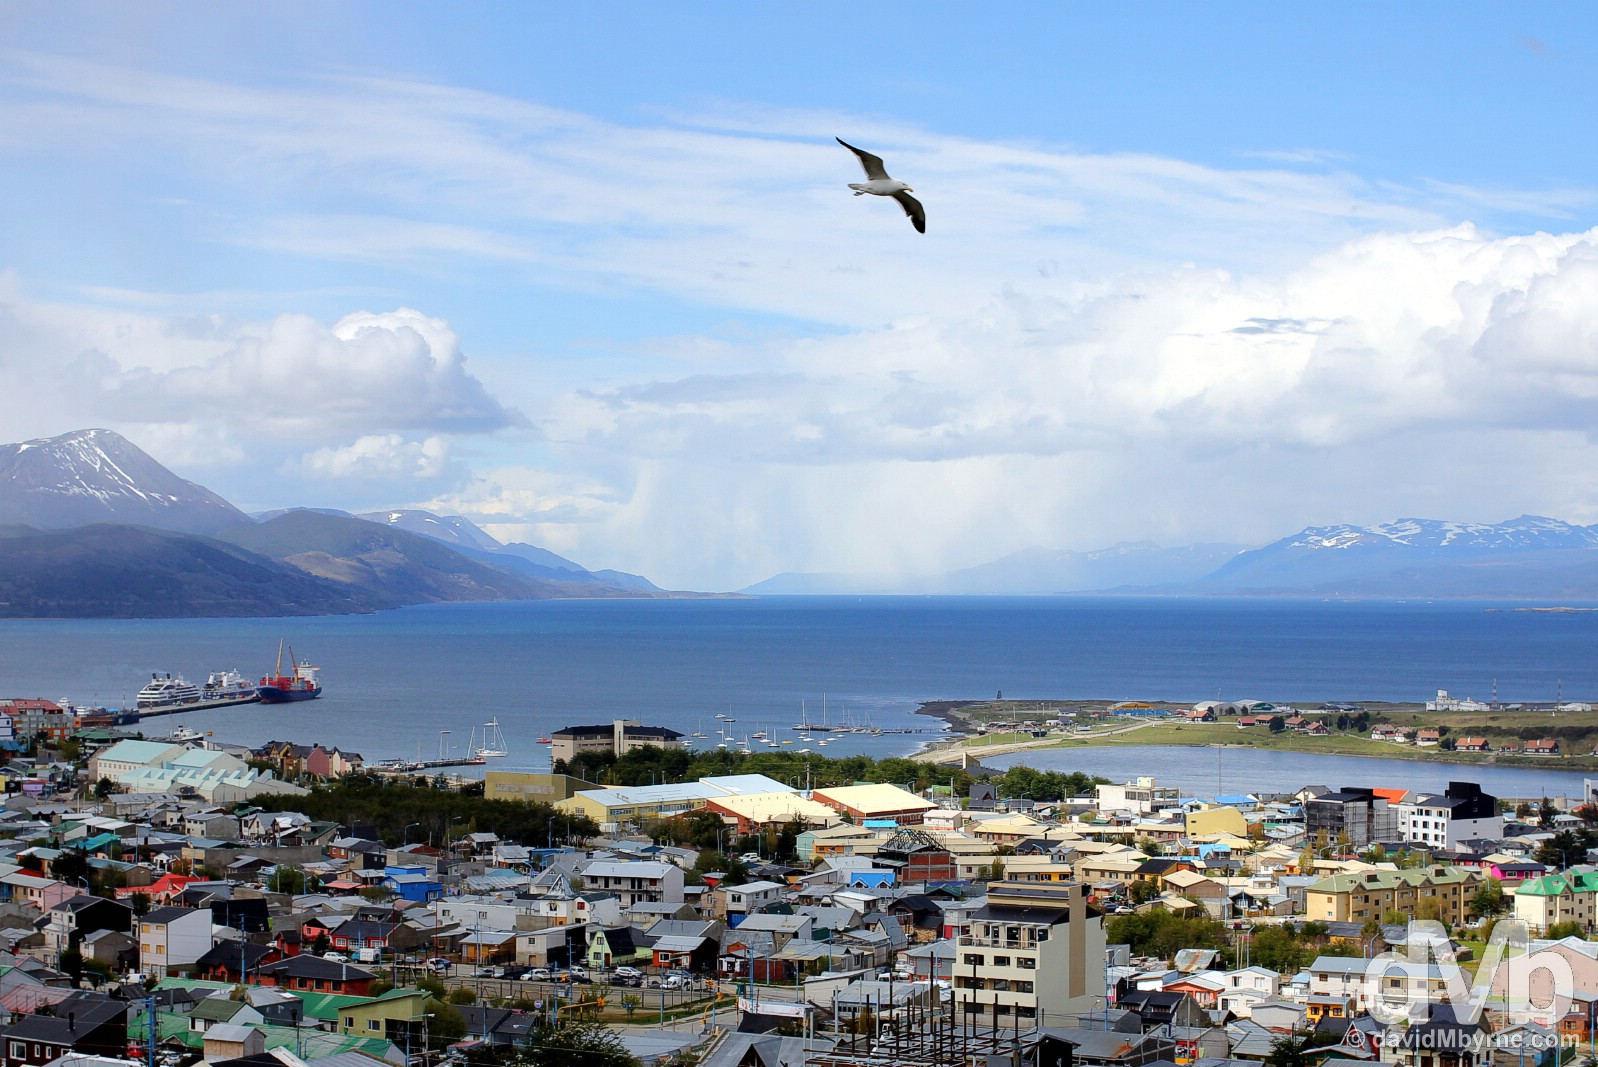 Soaring high over Ushuaia, Tierra del Fuego, Argentina. November 15, 2015.